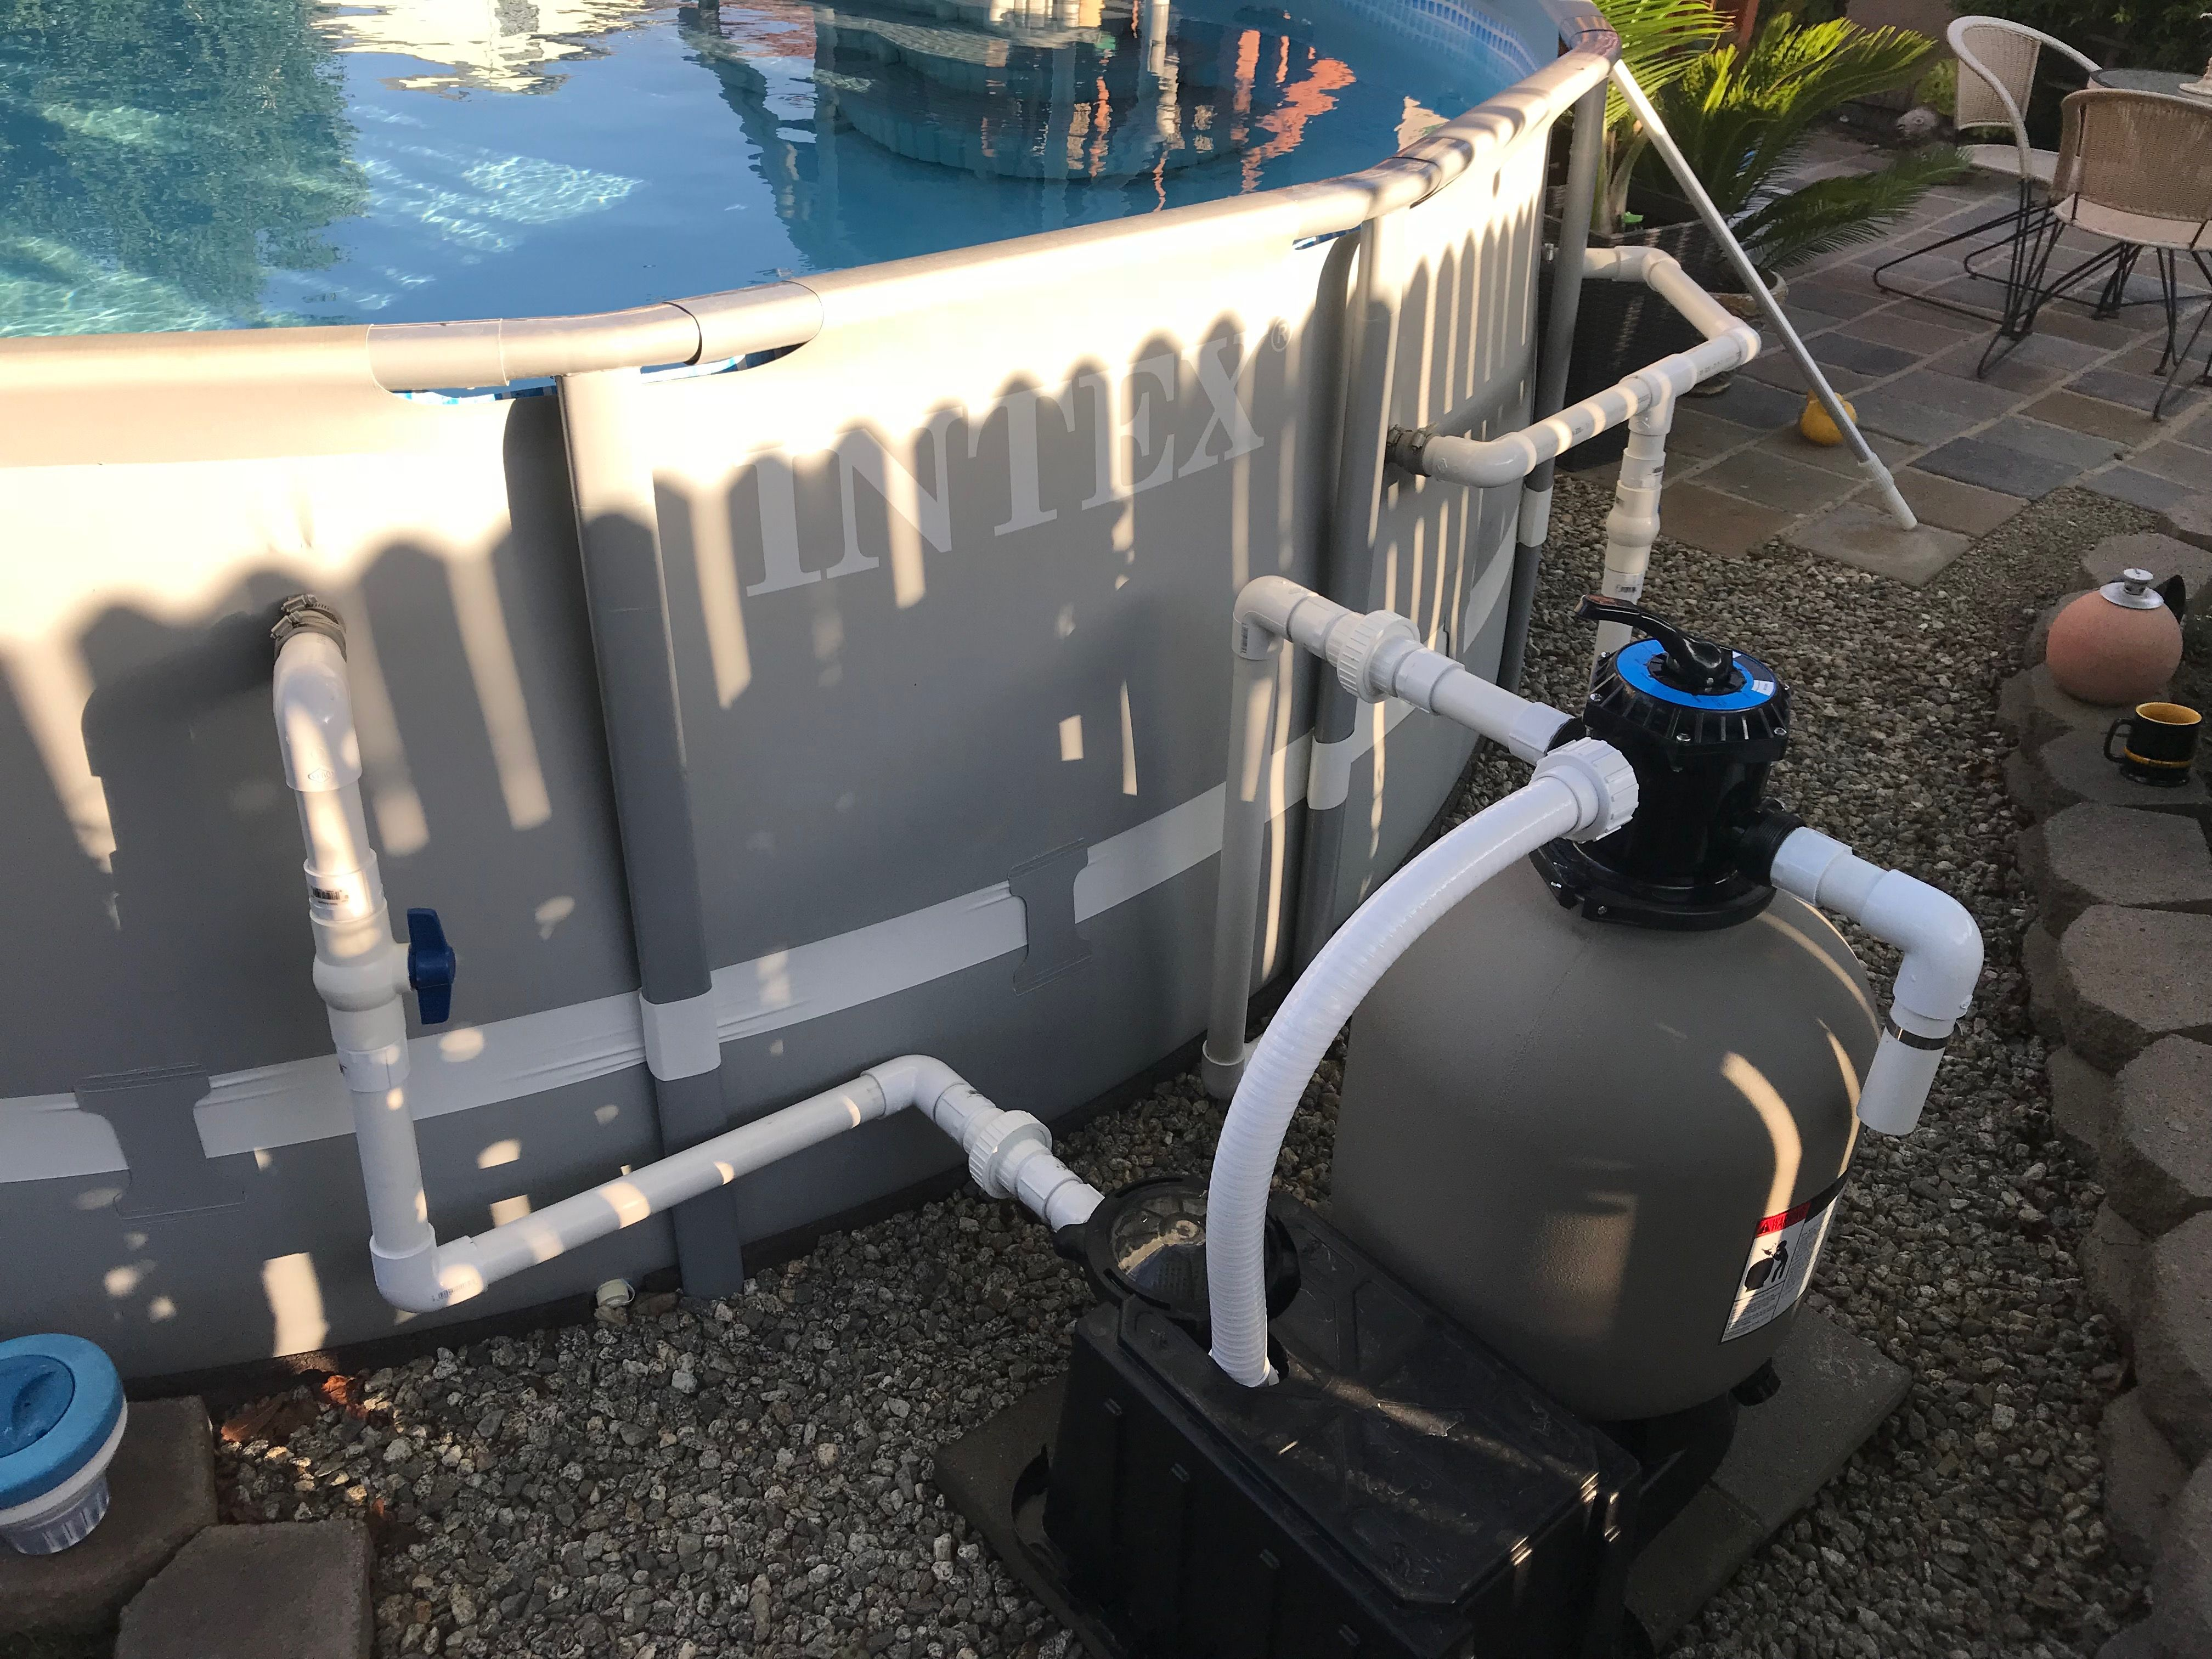 Pump And Filter Upgrade From Cartridge W 1 2 H Pump To A 19 Sand Filter W 1 Hp Pump Also Plumbed 1 1 2 Hard Above Ground Pool Pumps Pvc Pool Pool Plumbing